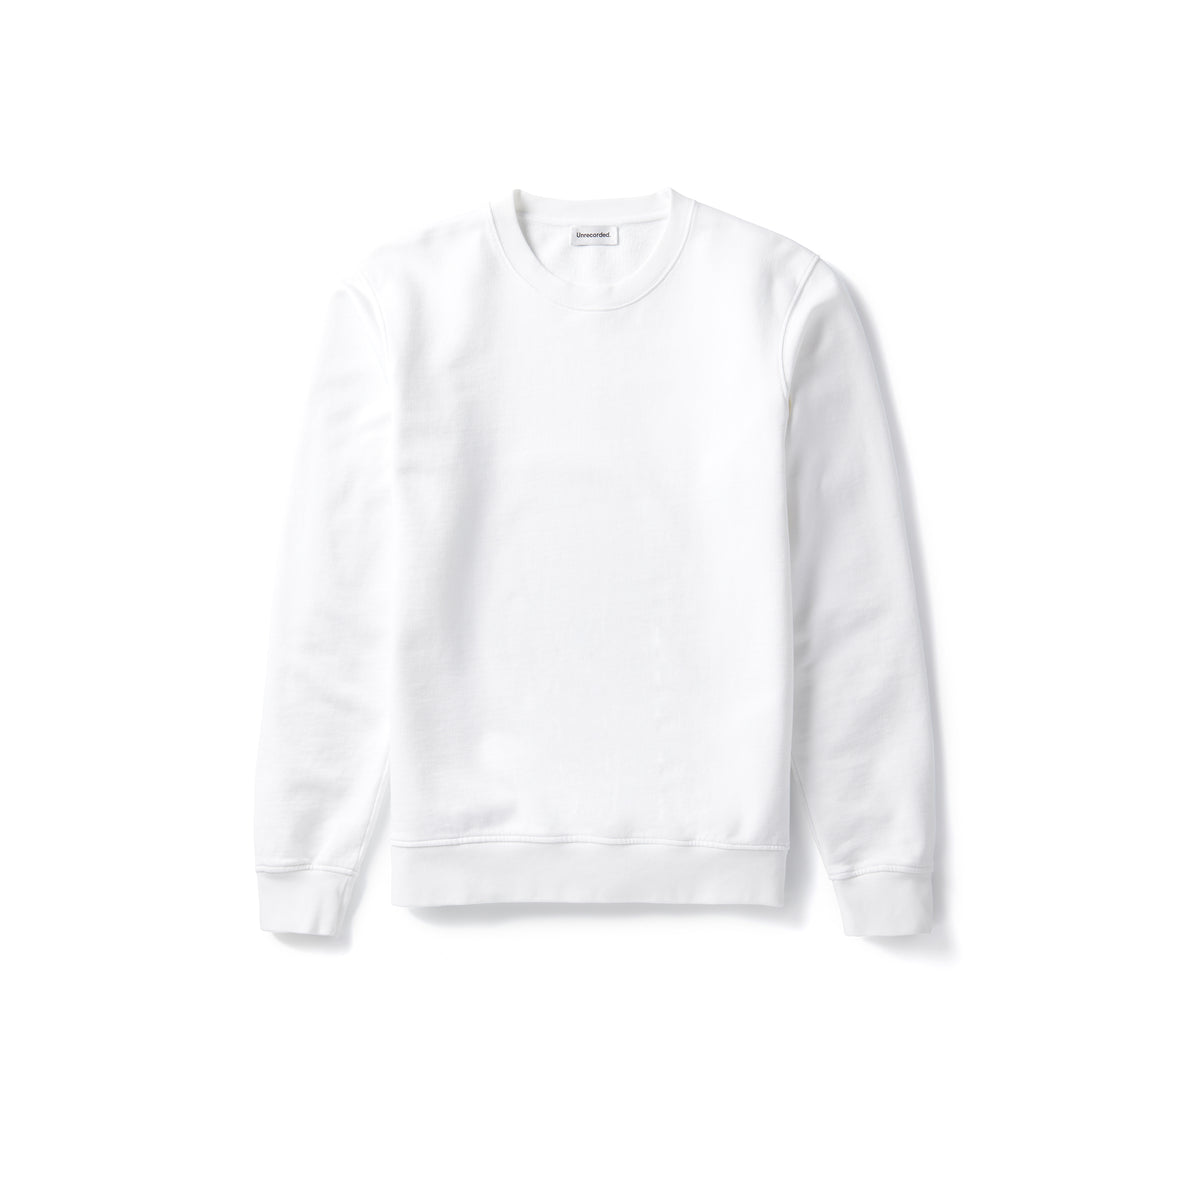 Sweater White - Unrecorded